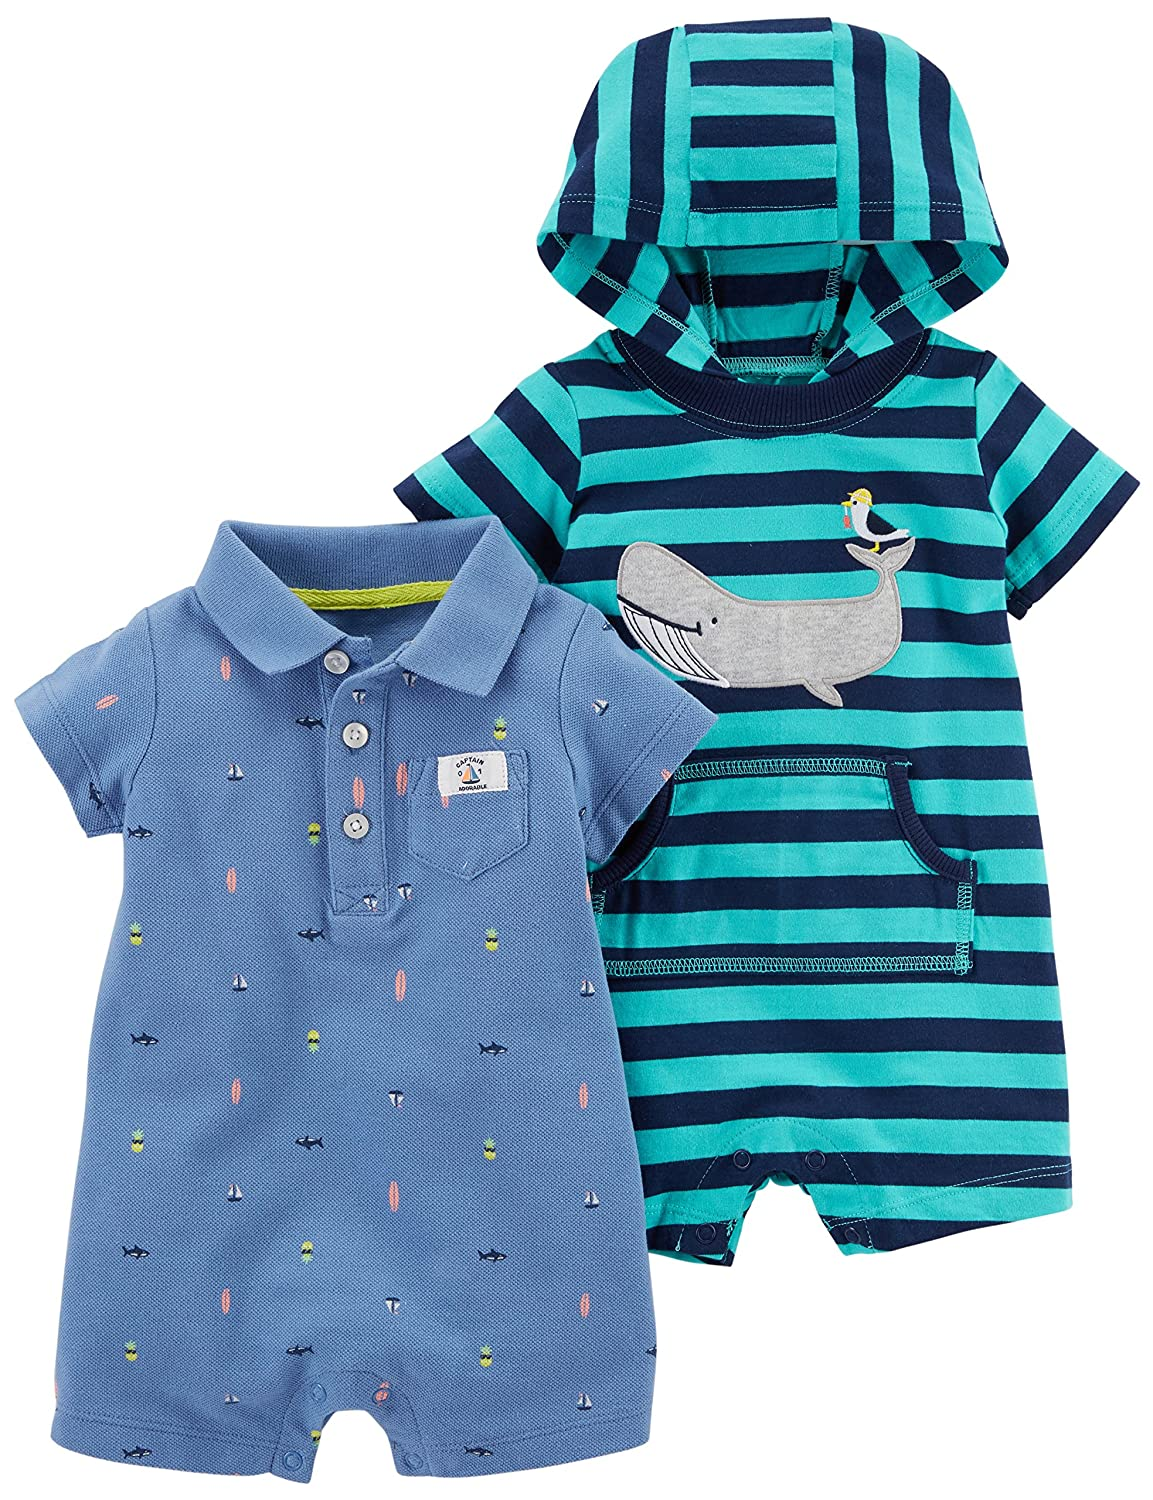 Carters Baby Boys One Piece Rompers Pack of 2